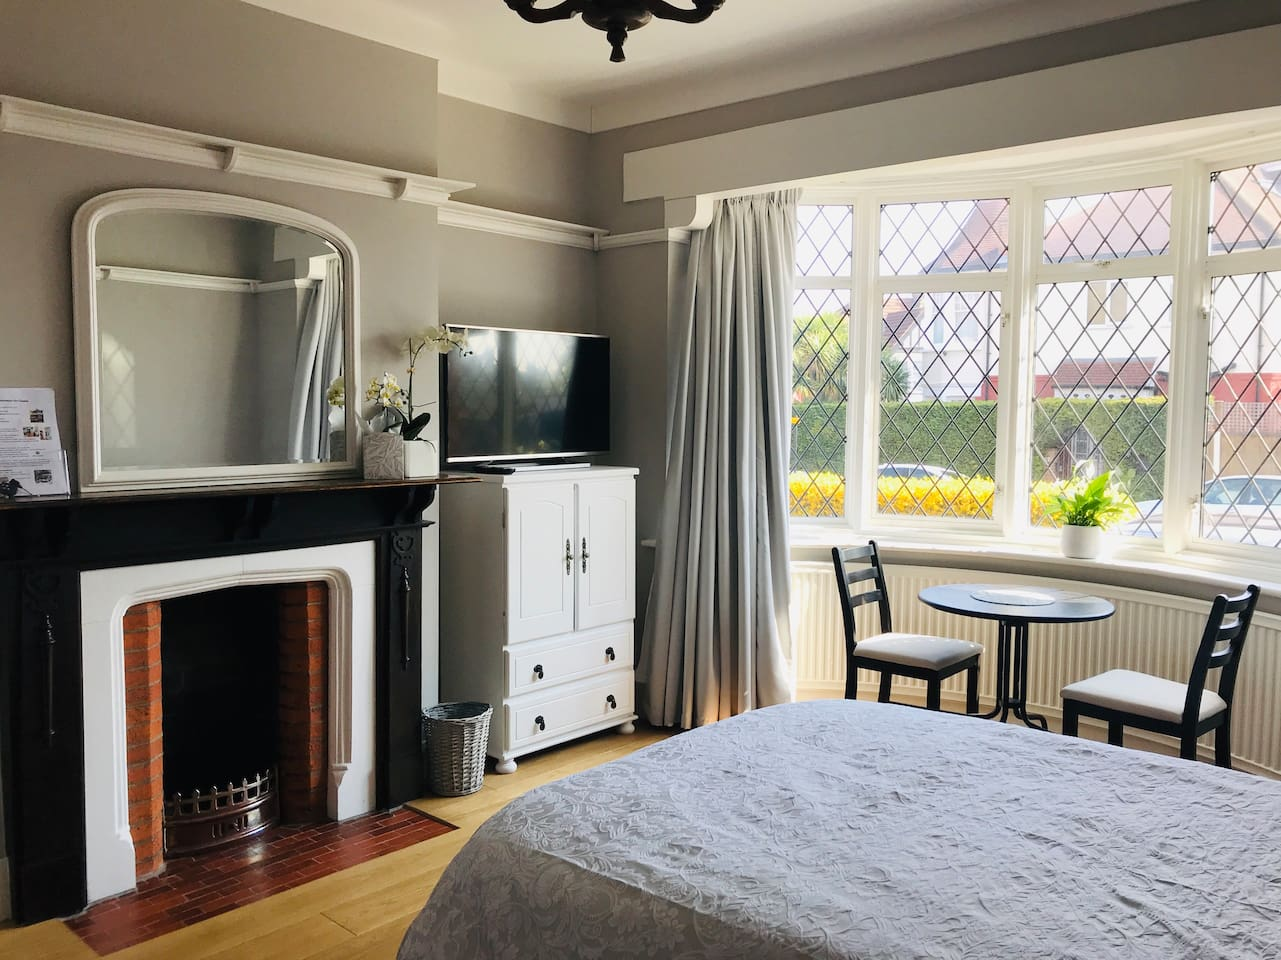 Large, bright and clean bedroom with seating and dining area, located on the ground floor. It is near the front entrance of the property so it feels very private - you don't have to walk through the rest of the house to get to your room.